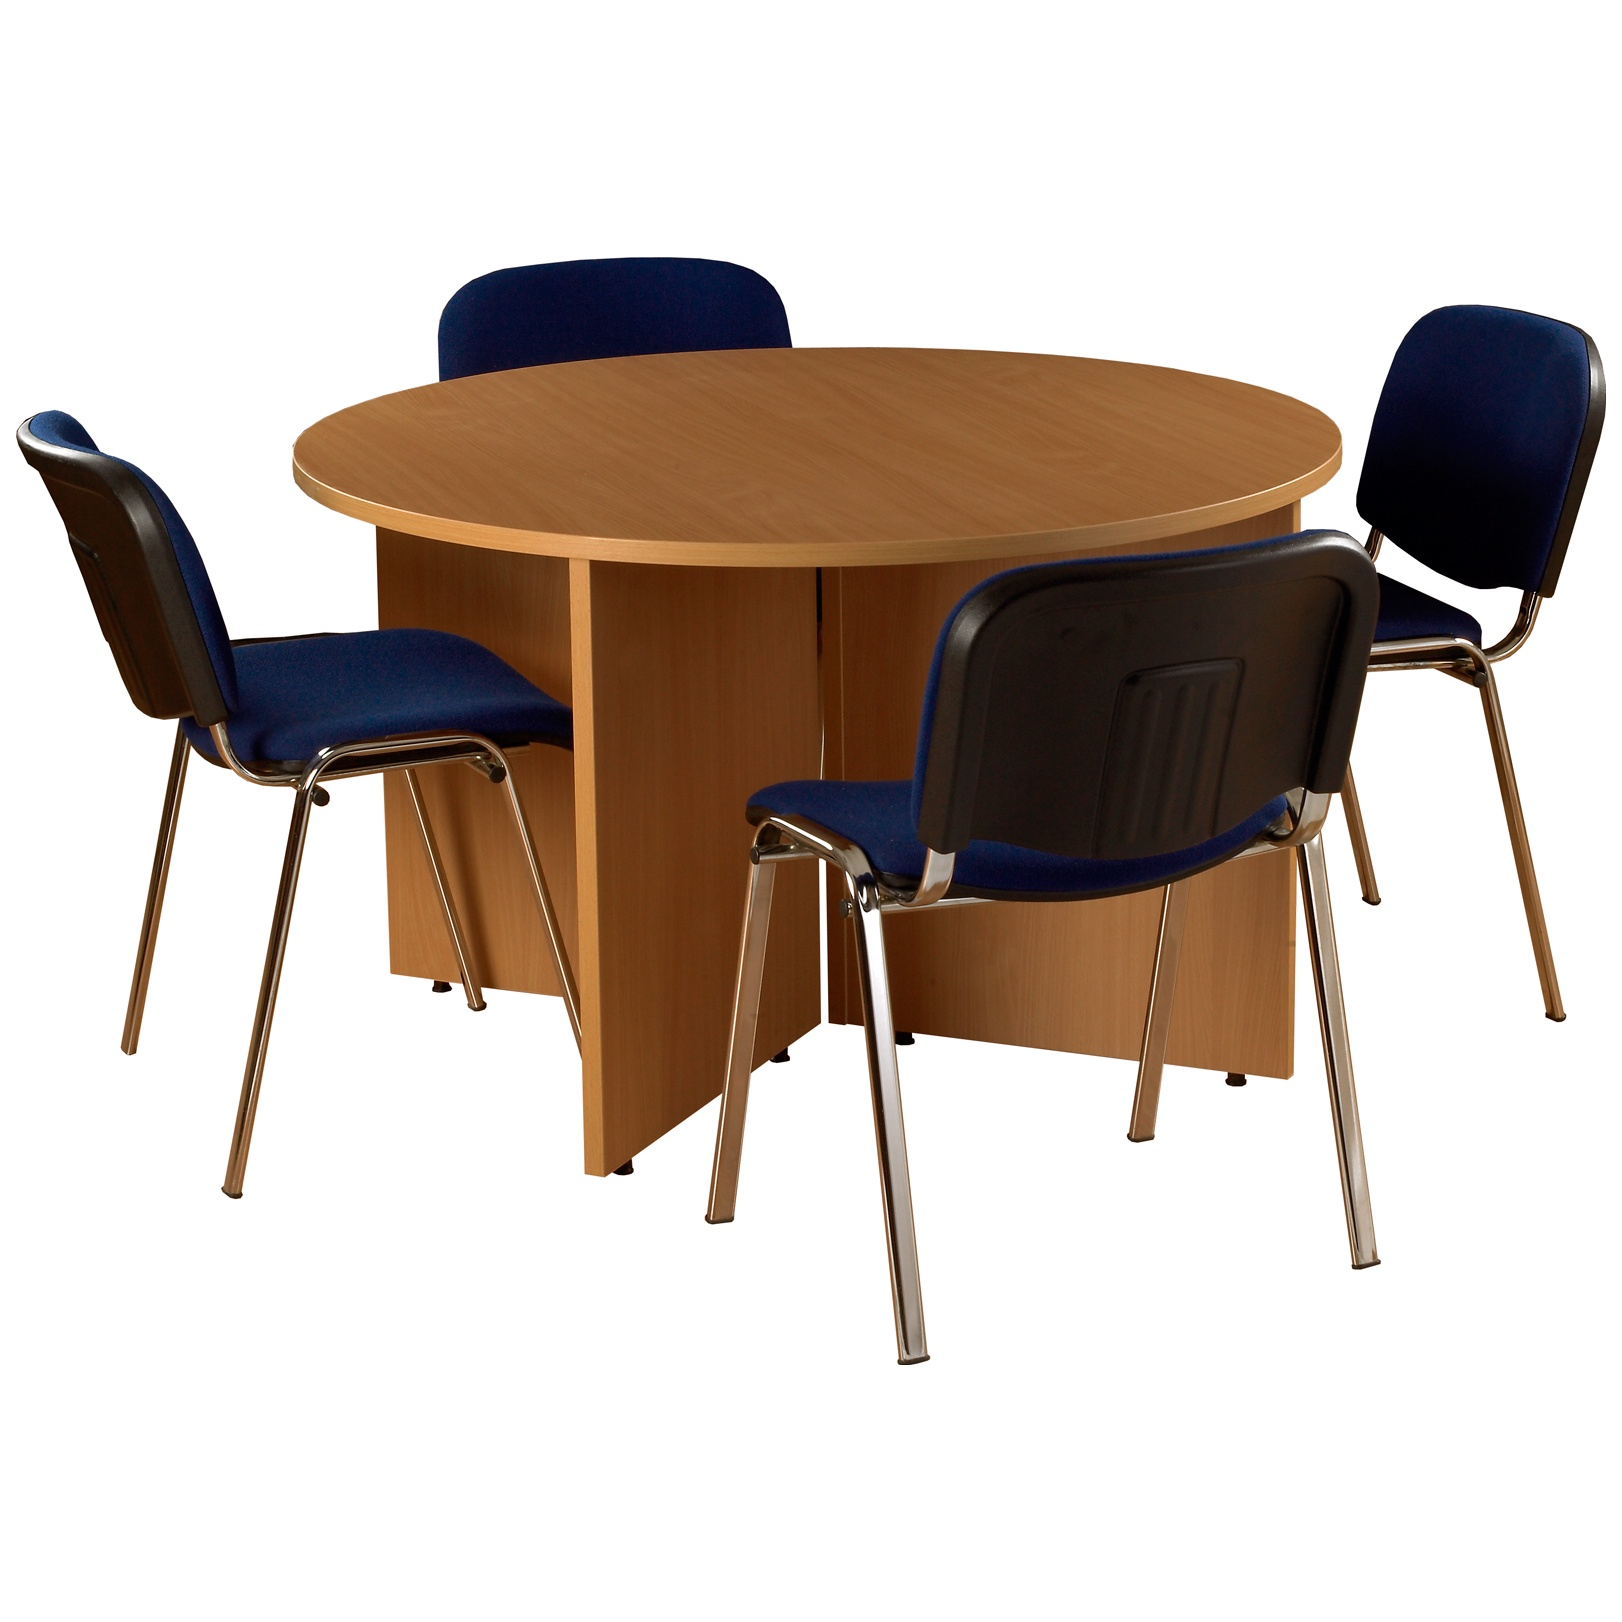 Bundle Deal Round Meeting Table With 4 Chairs Meeting Room Tables